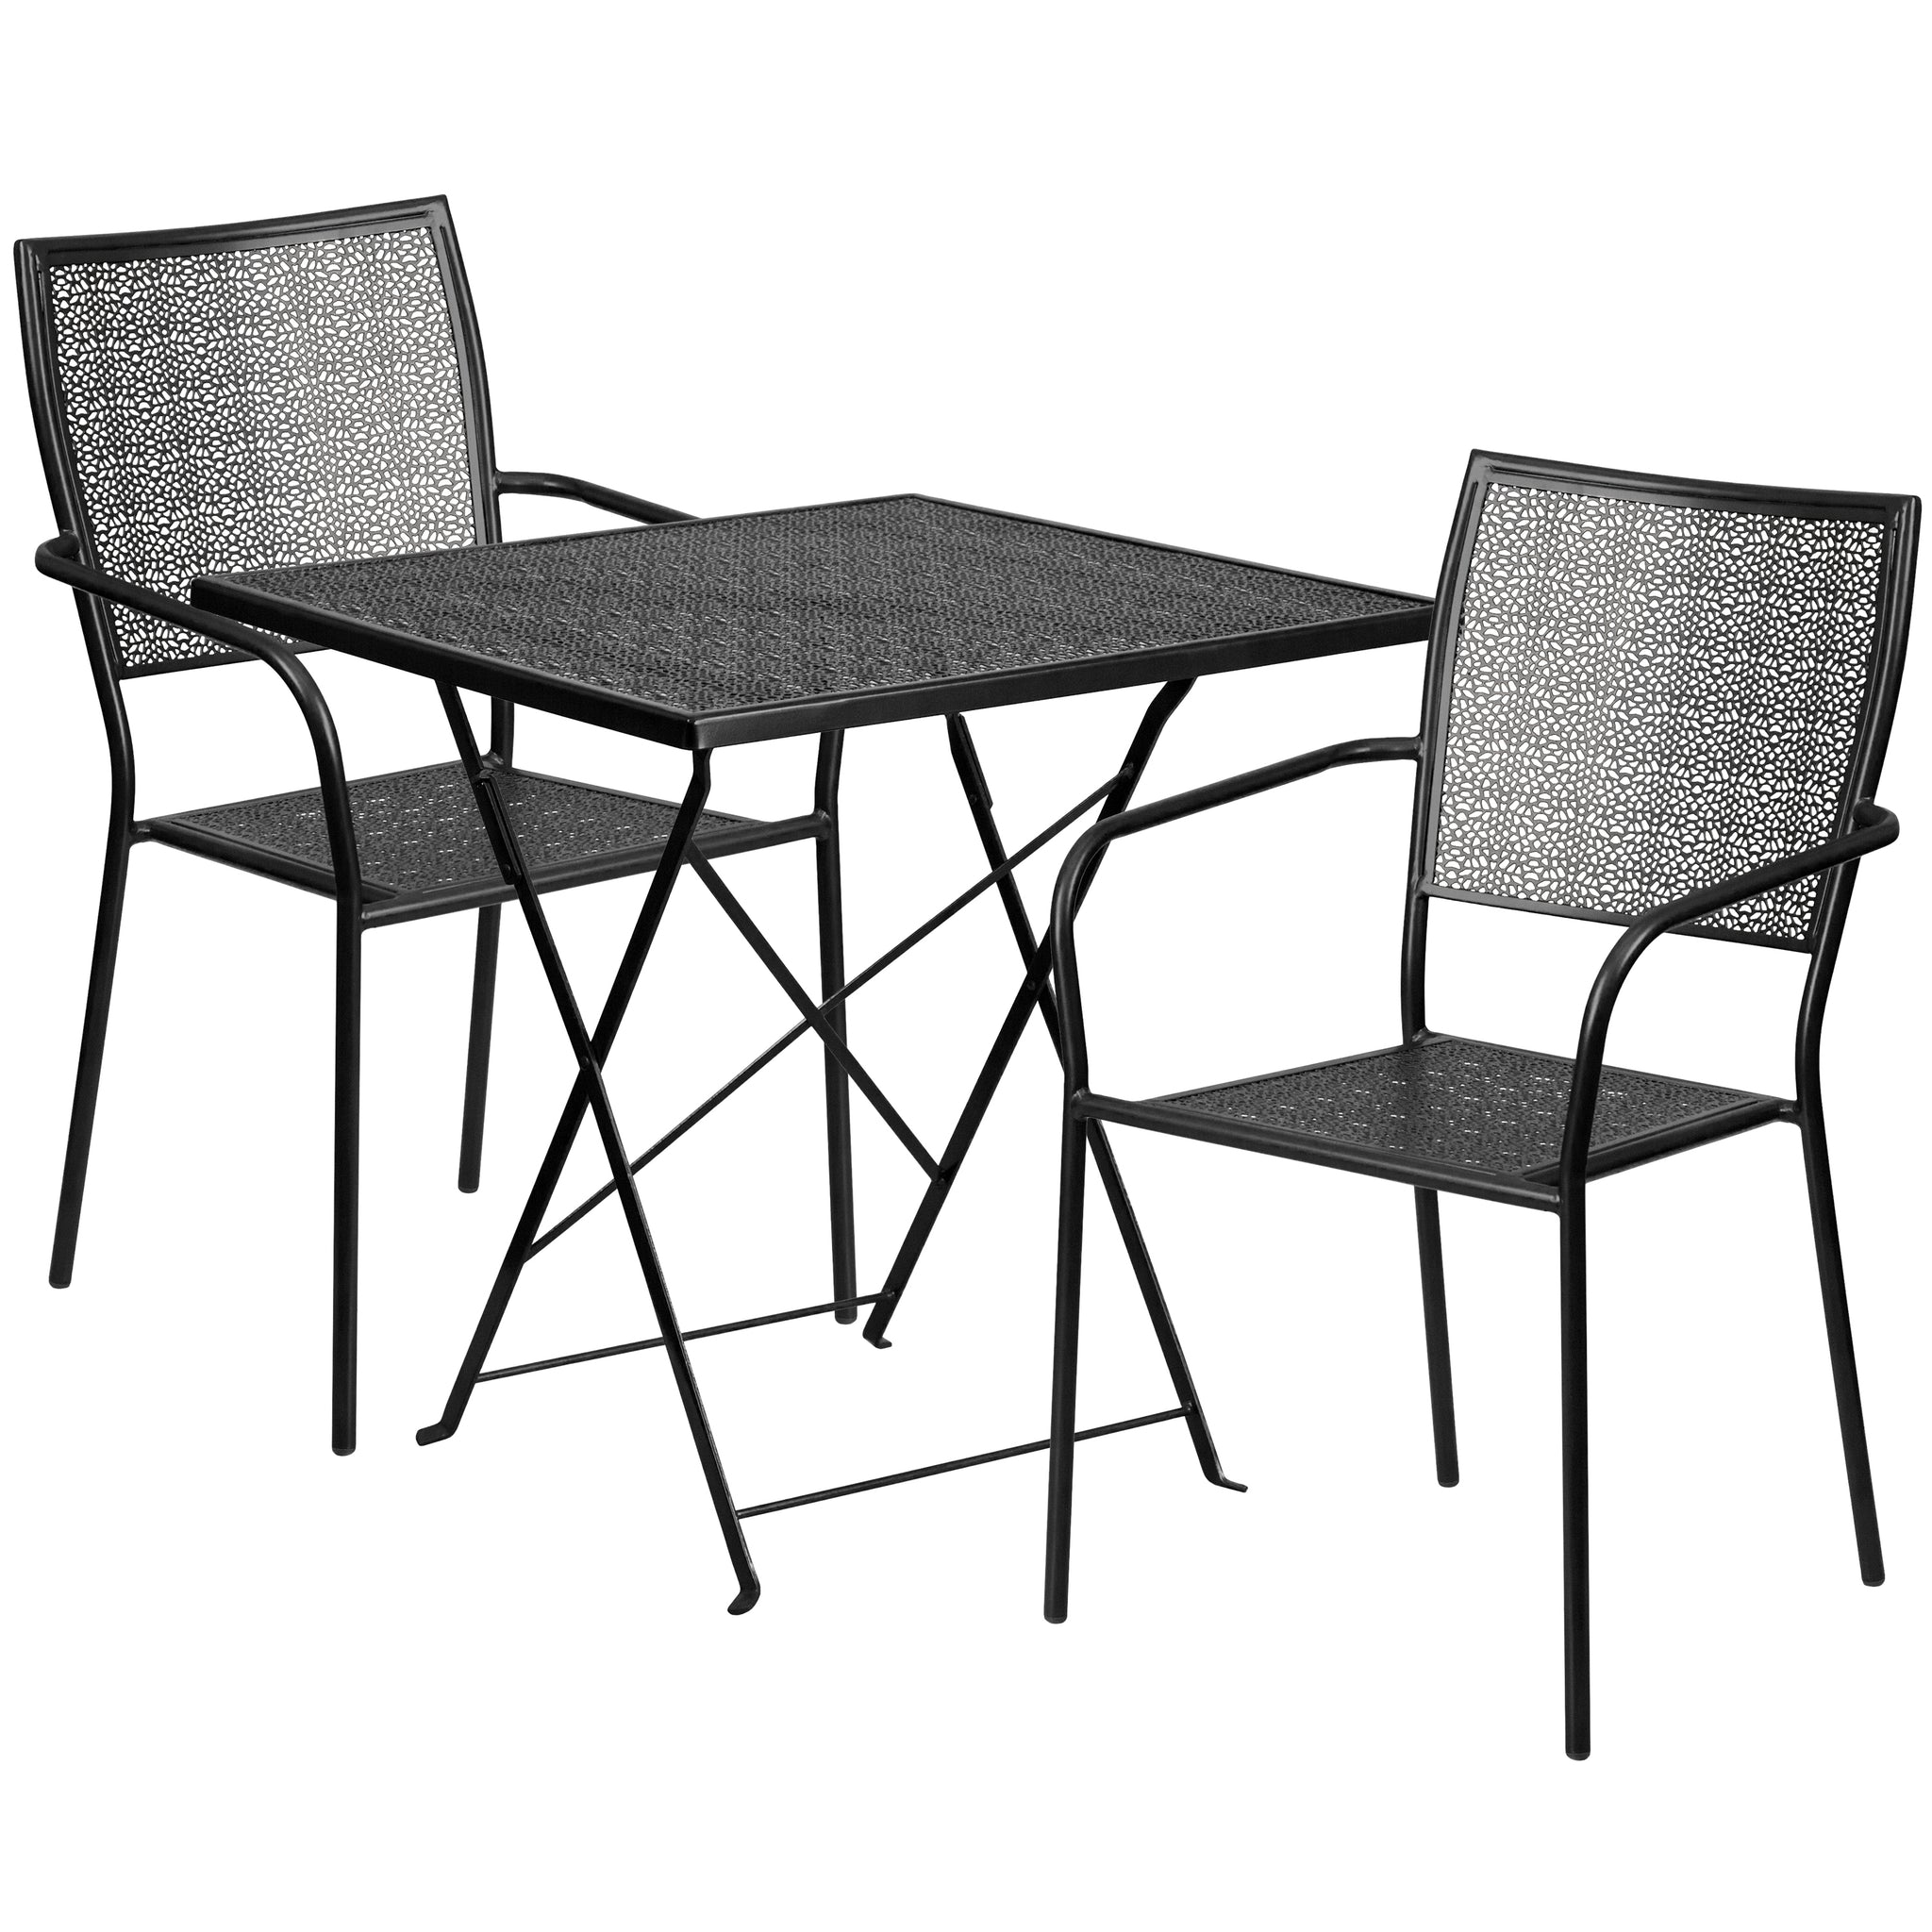 28'' Square Indoor-Outdoor Steel Folding Patio Table Set with 2 Square Back Chairs: Coral